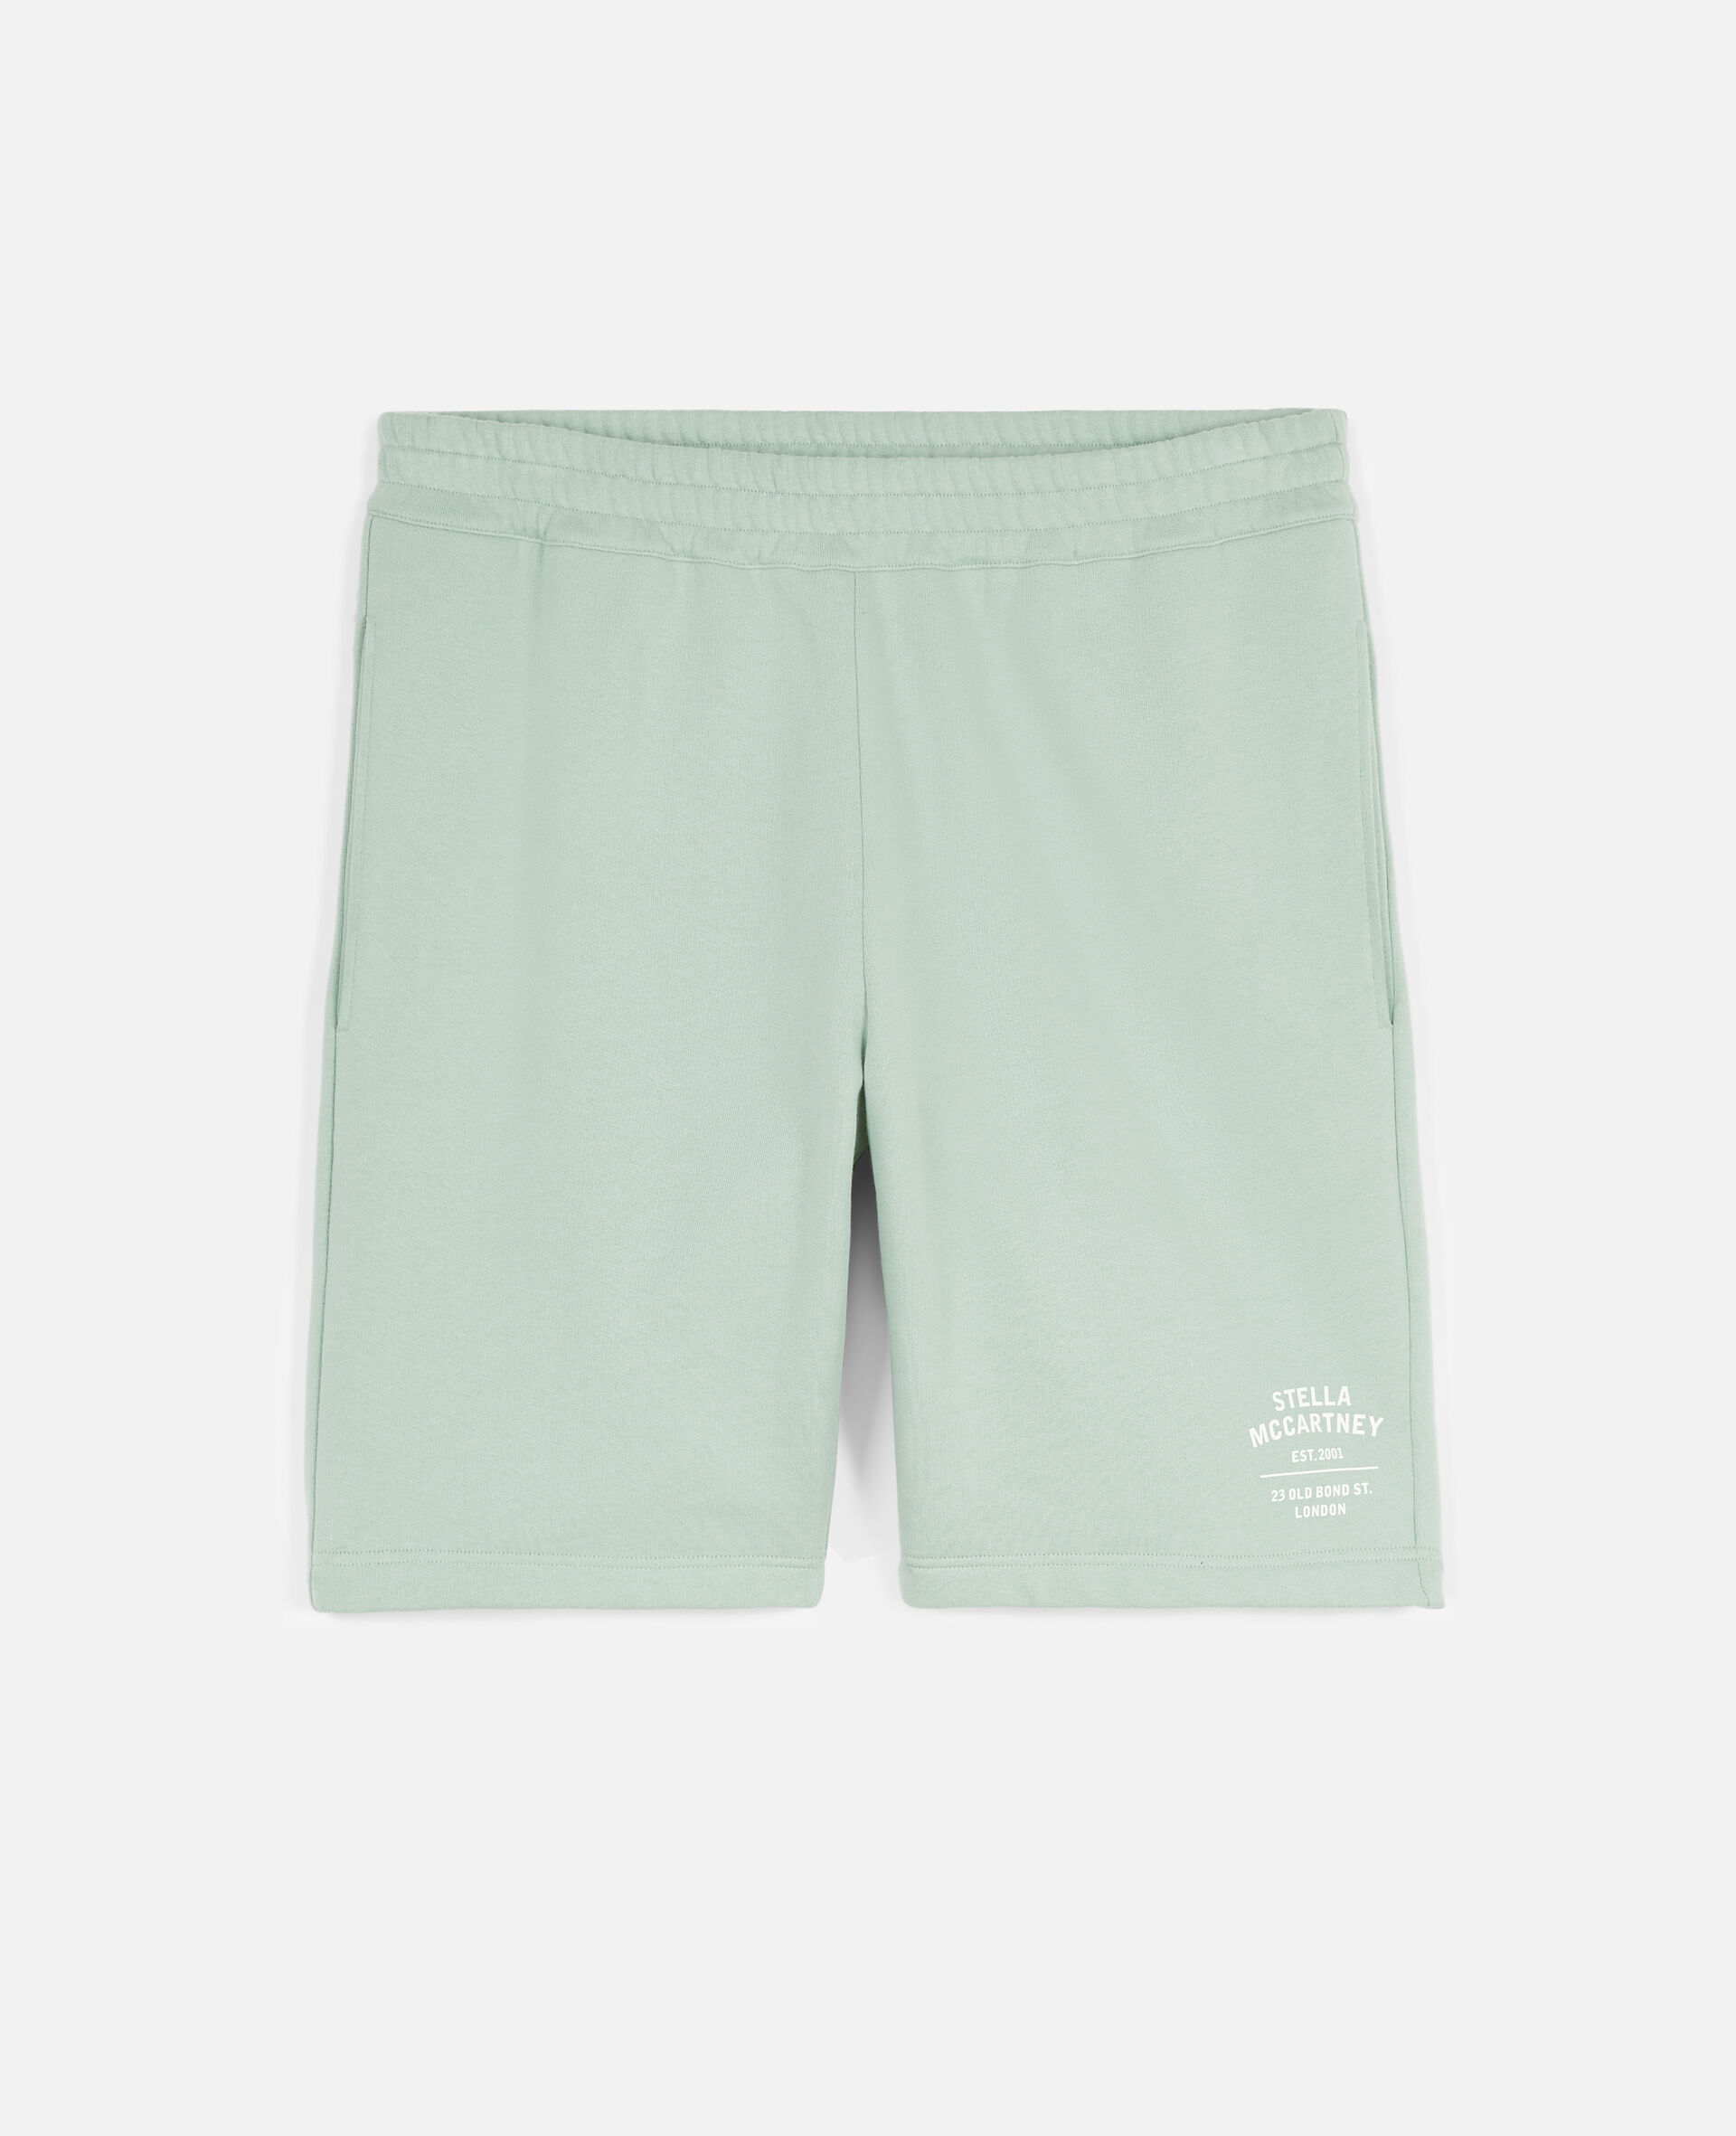 23 OBS Shorts -Green-large image number 0